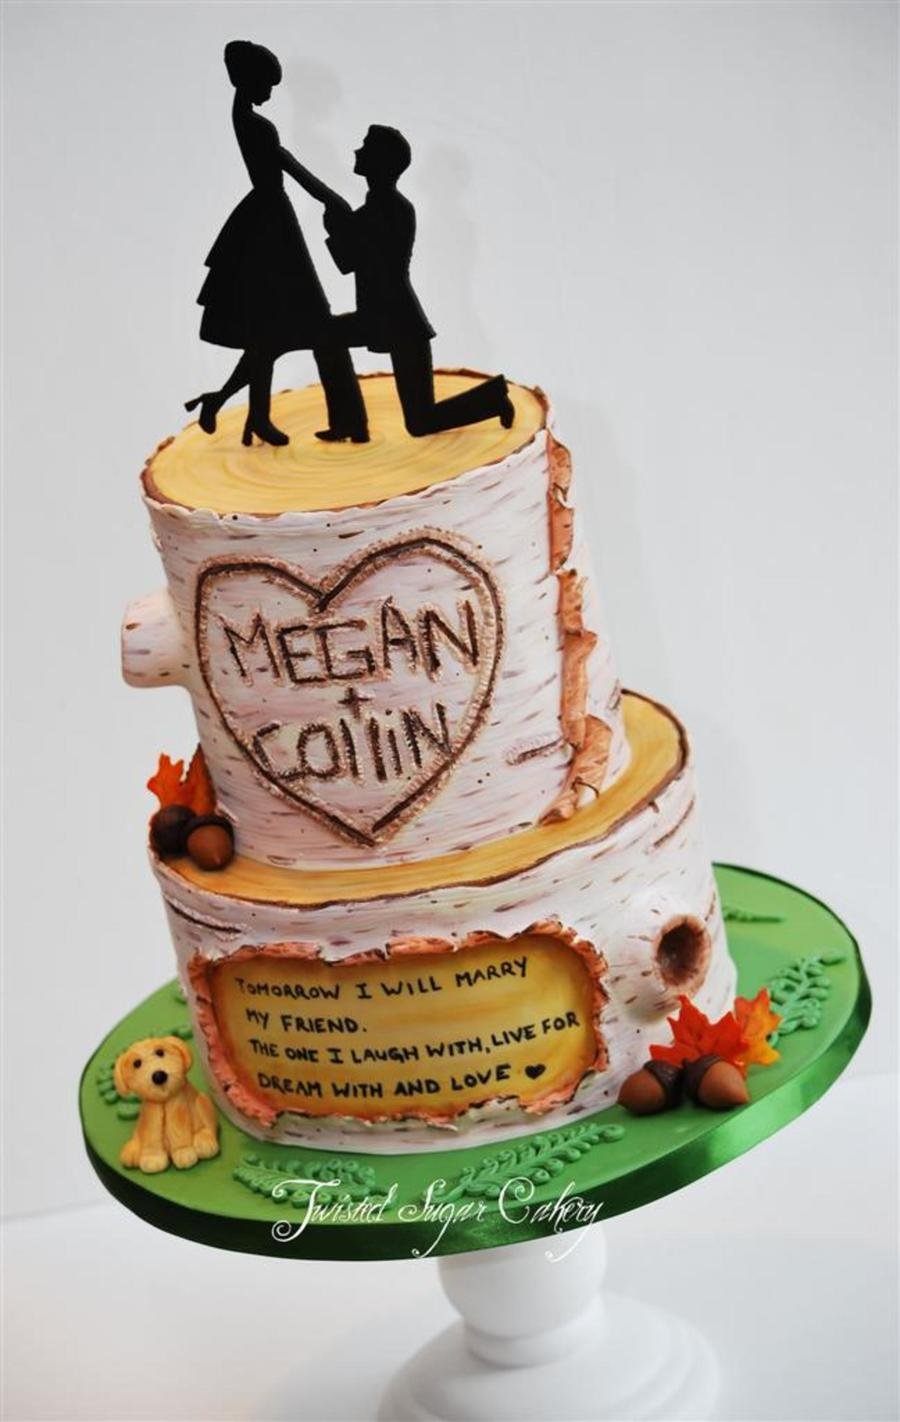 This Cake Was Based On Their Engagement Scene Proposal Was On A Hike With Their Beloved Dog on Cake Central